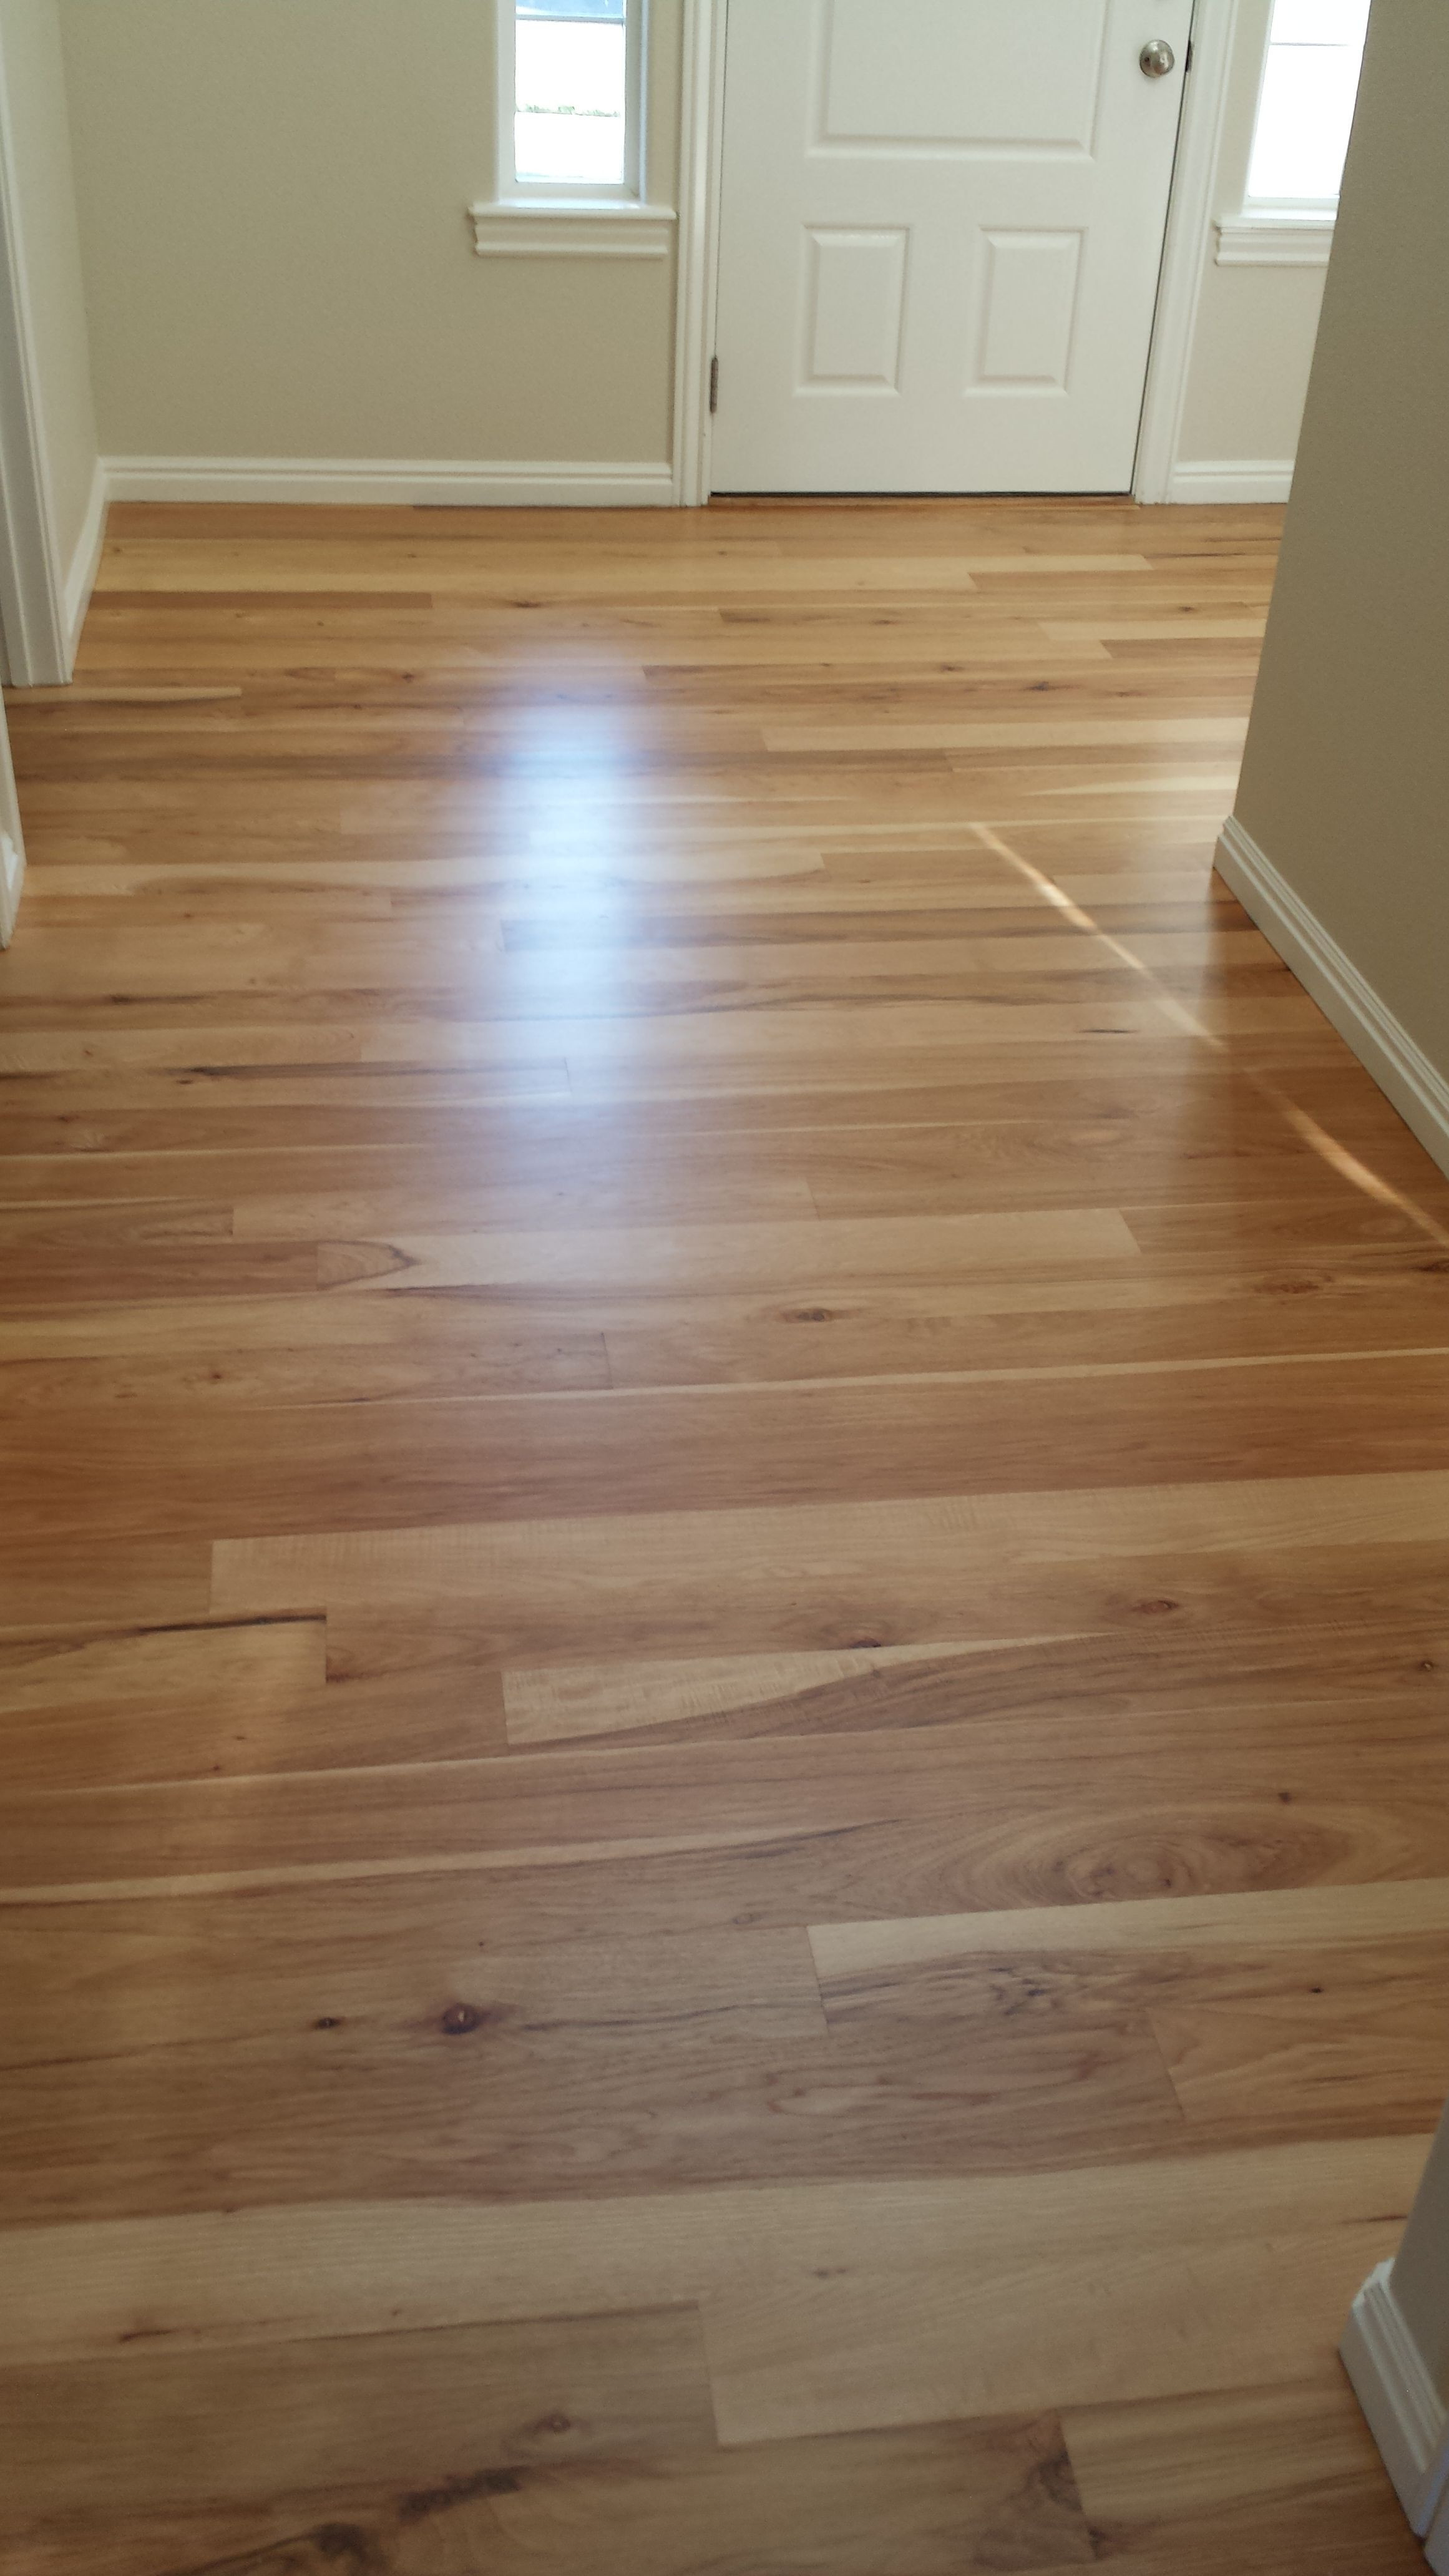 hardwood floor refinishing cincinnati of hardwood floor store 50 fresh hardwood flooring stores graphics 50 s within hardwood floor store rustic hickory sand and refinish capell flooring and interiors in